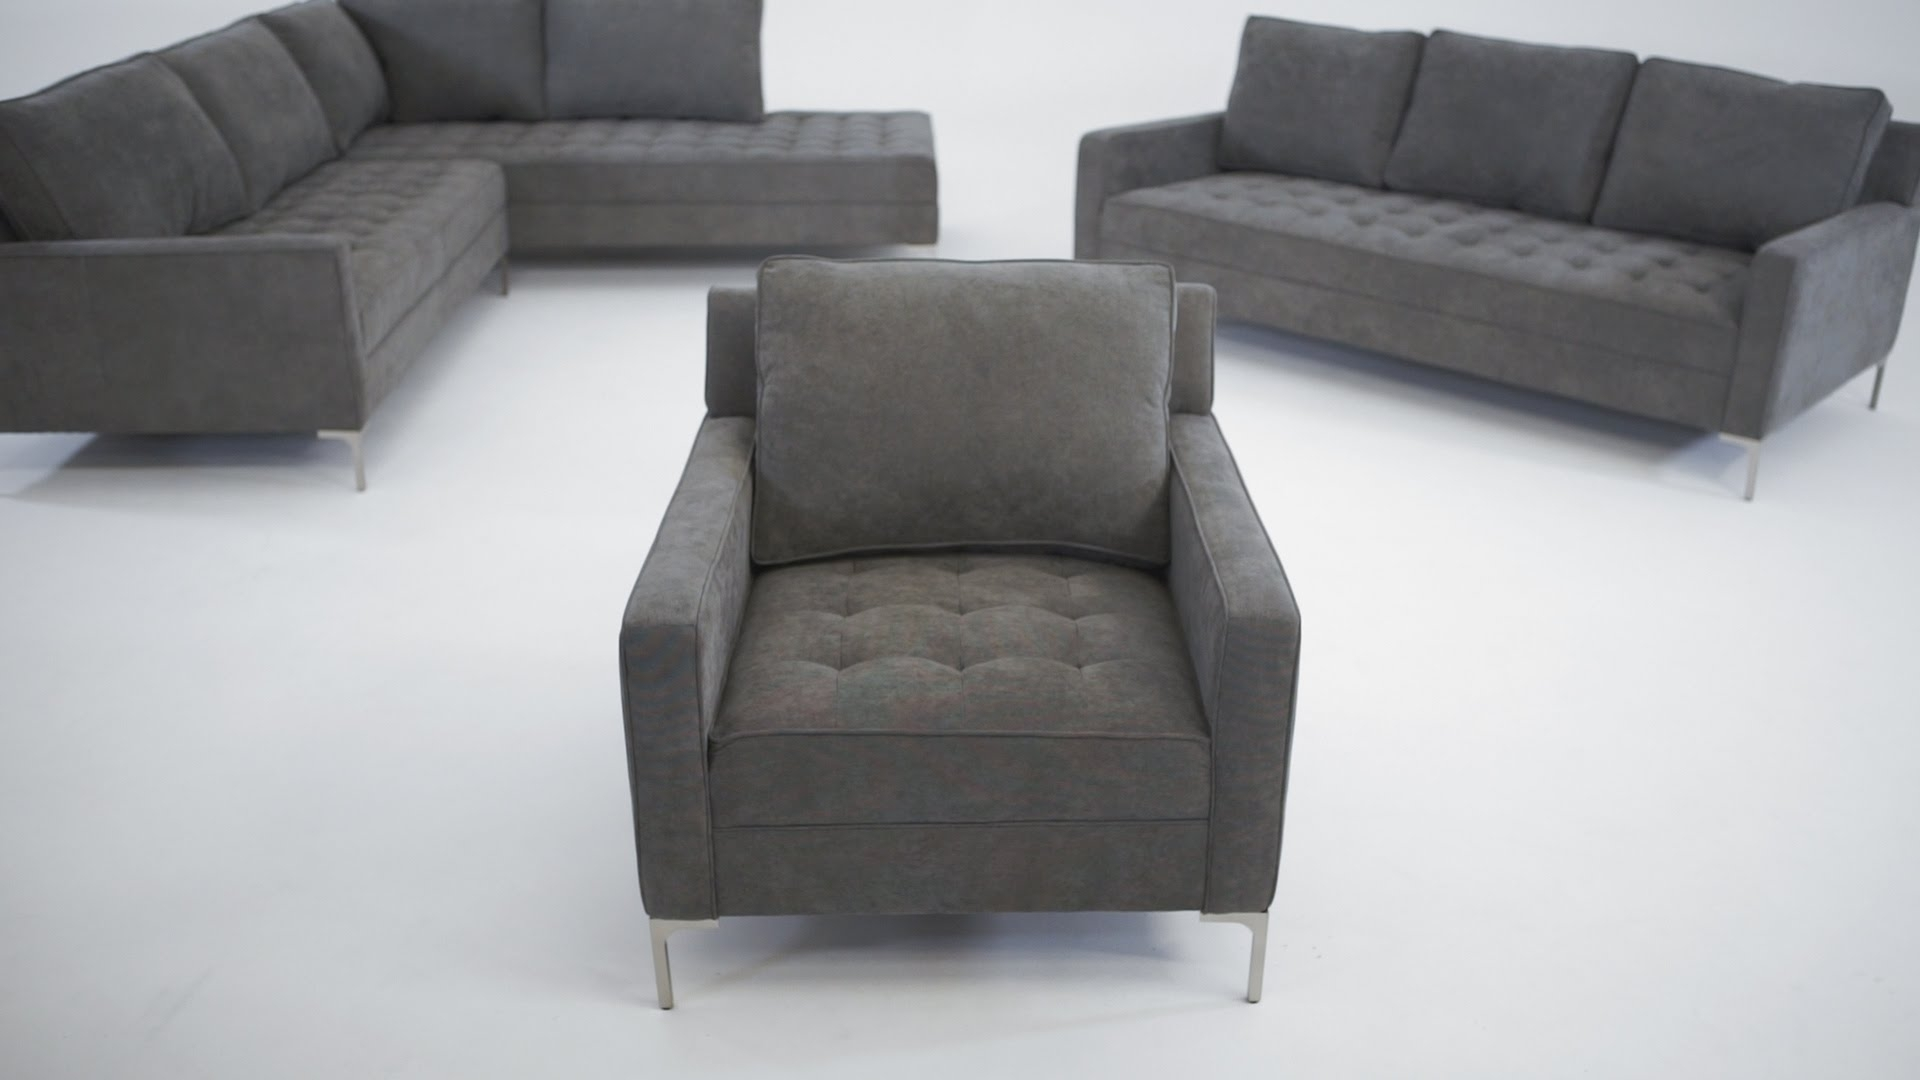 The Miami Collection - Structube - Youtube for Miami Sectional Sofas (Image 10 of 10)